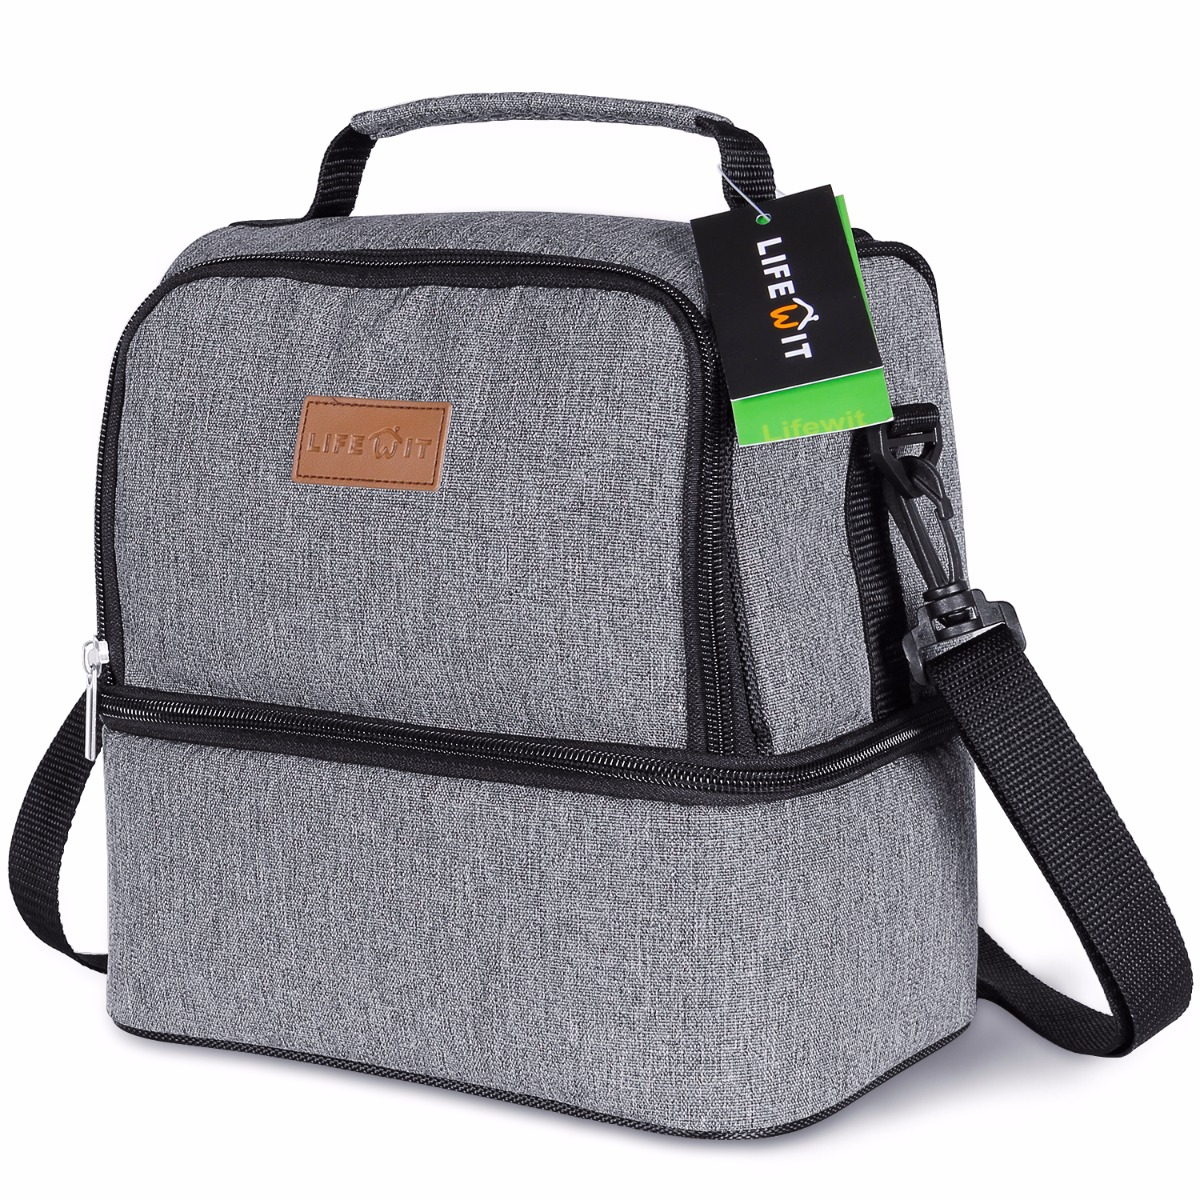 Lifewit 7L Insulated Lunch Bag Portable Waterproof Thermal Cooler Lunch Box Picnic Bag Tote Dual Compartment